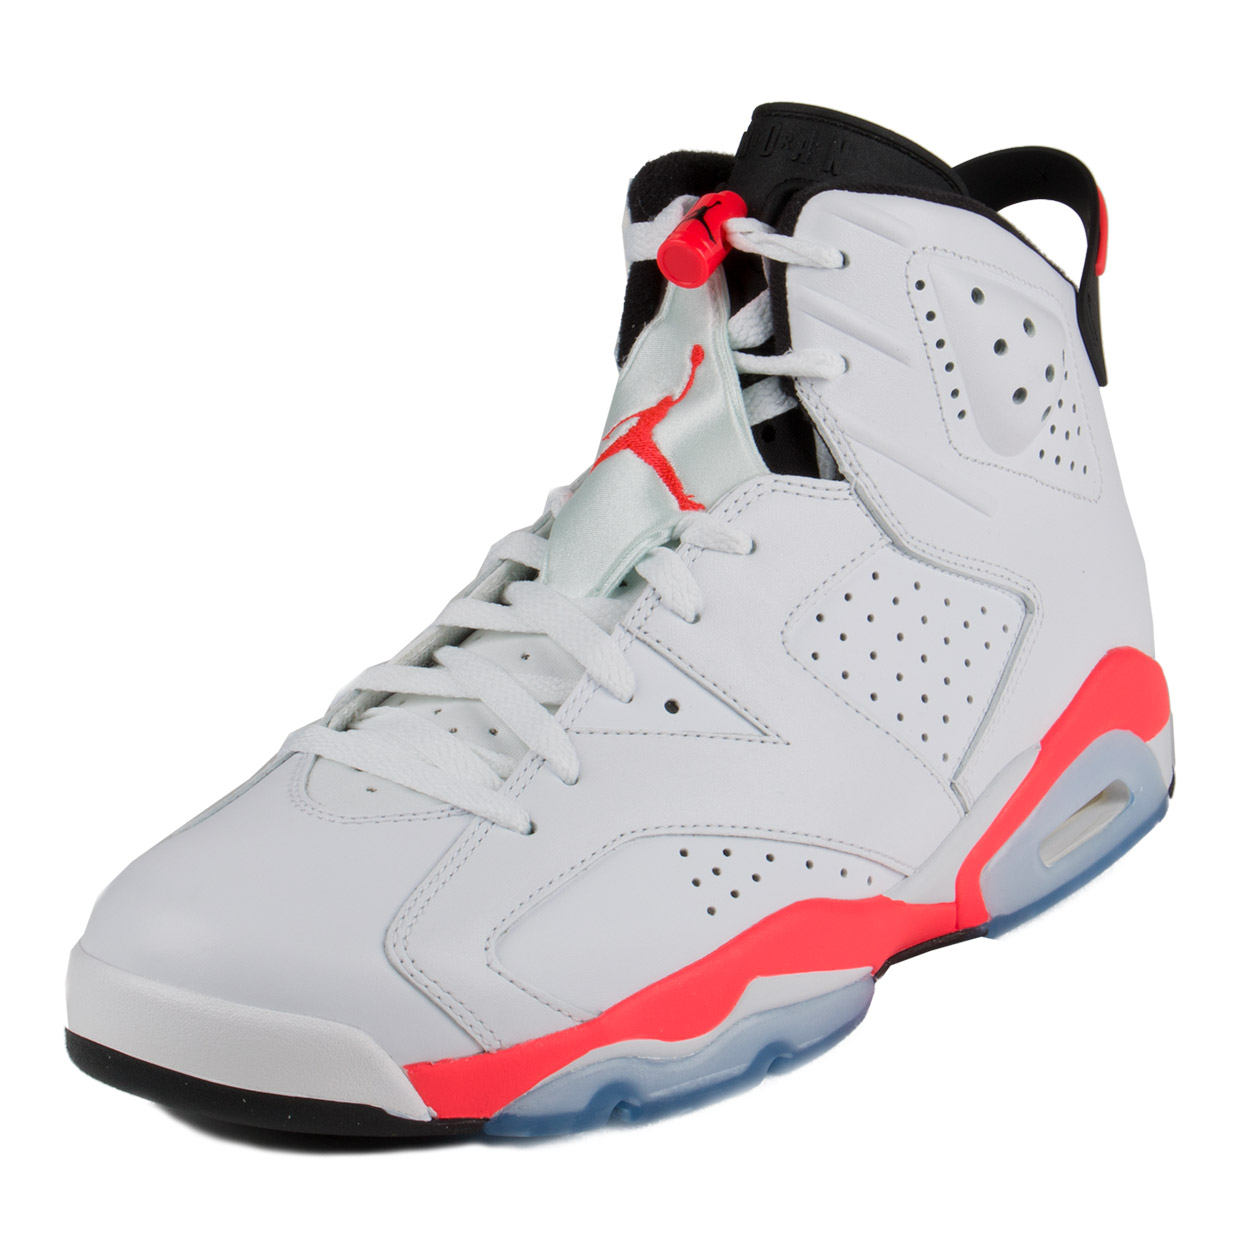 Nike Mens Air Jordan 6 Retro White/Infrared-Black 384664-123